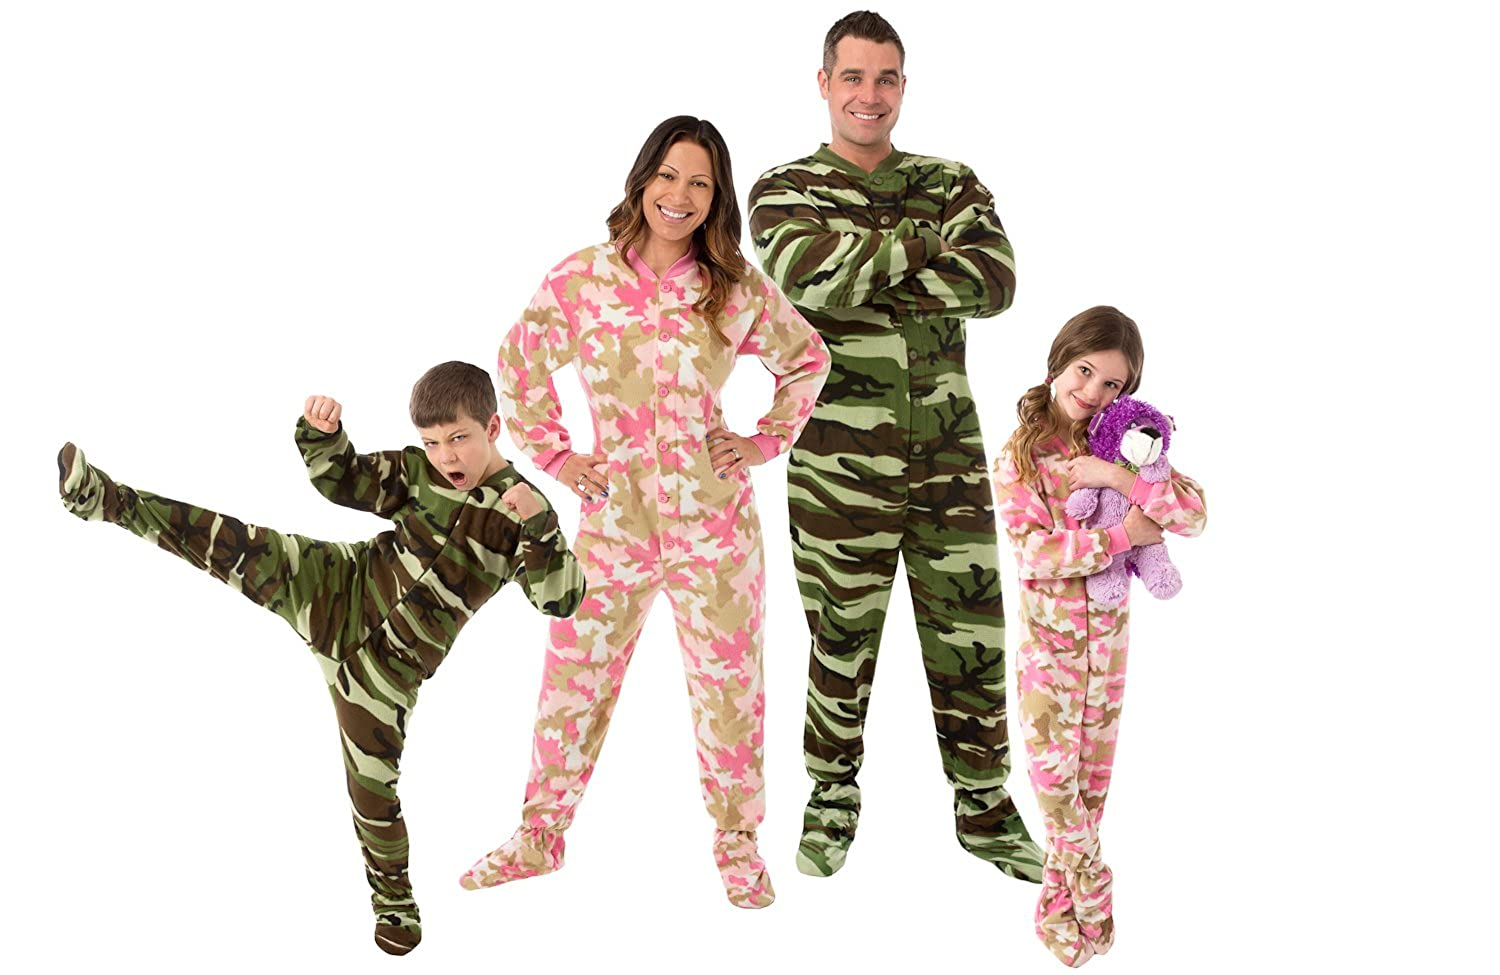 Amazon.com: Big Feet Pjs Kids Green Camo Fleece Boys Footed Pajamas Onesie Sleeper: Clothing